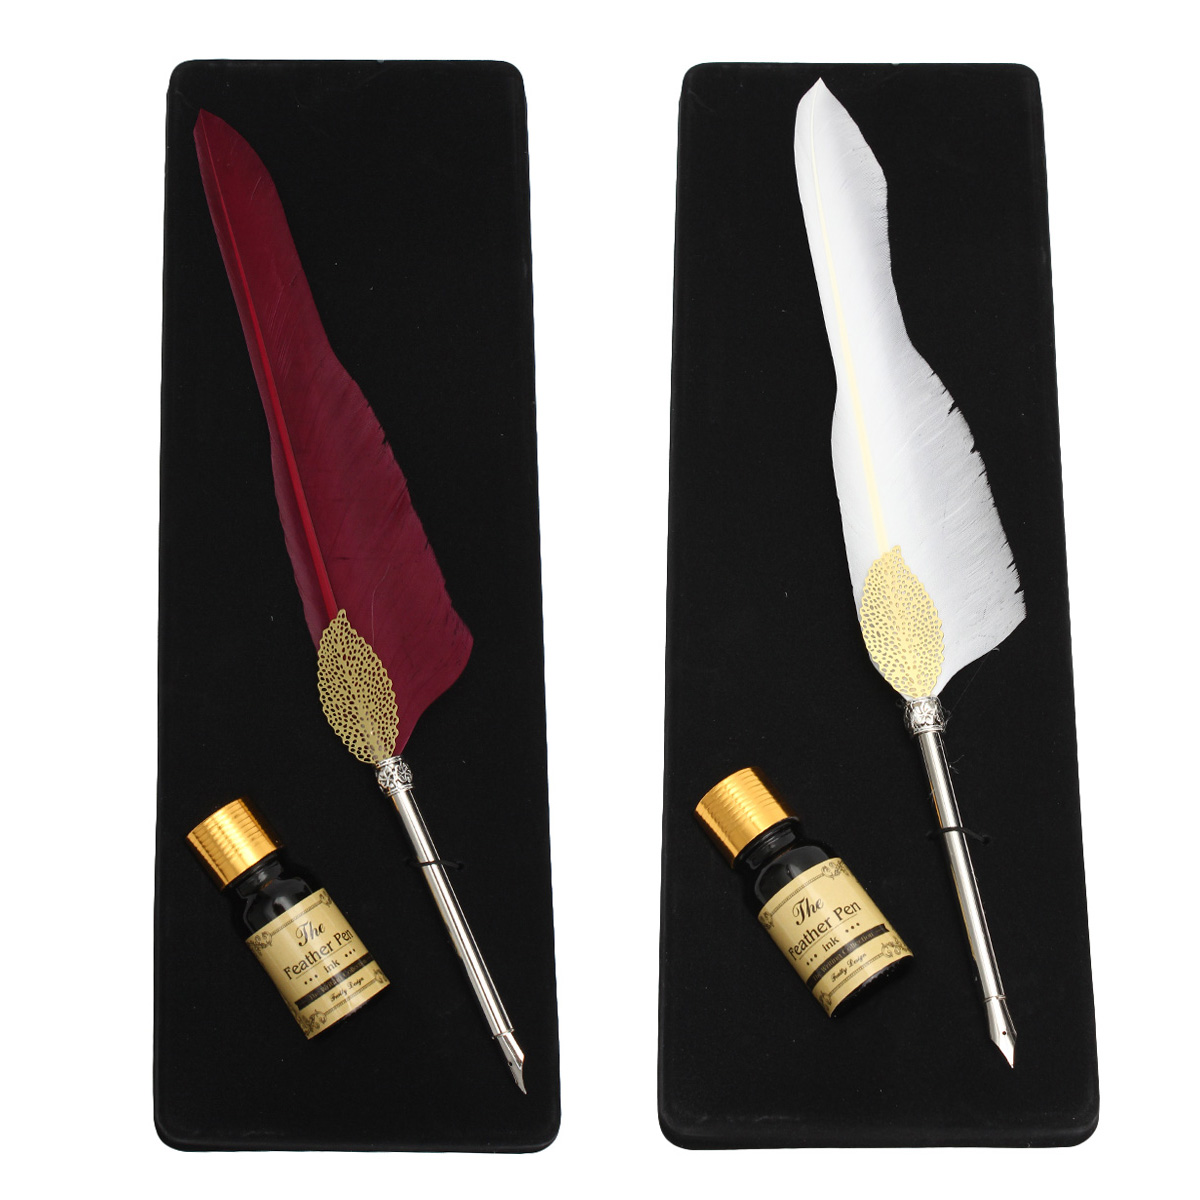 Antique Pure Goose Feather Quill Dip Pen and Ink Set ...Feather Quill Pen And Ink Set